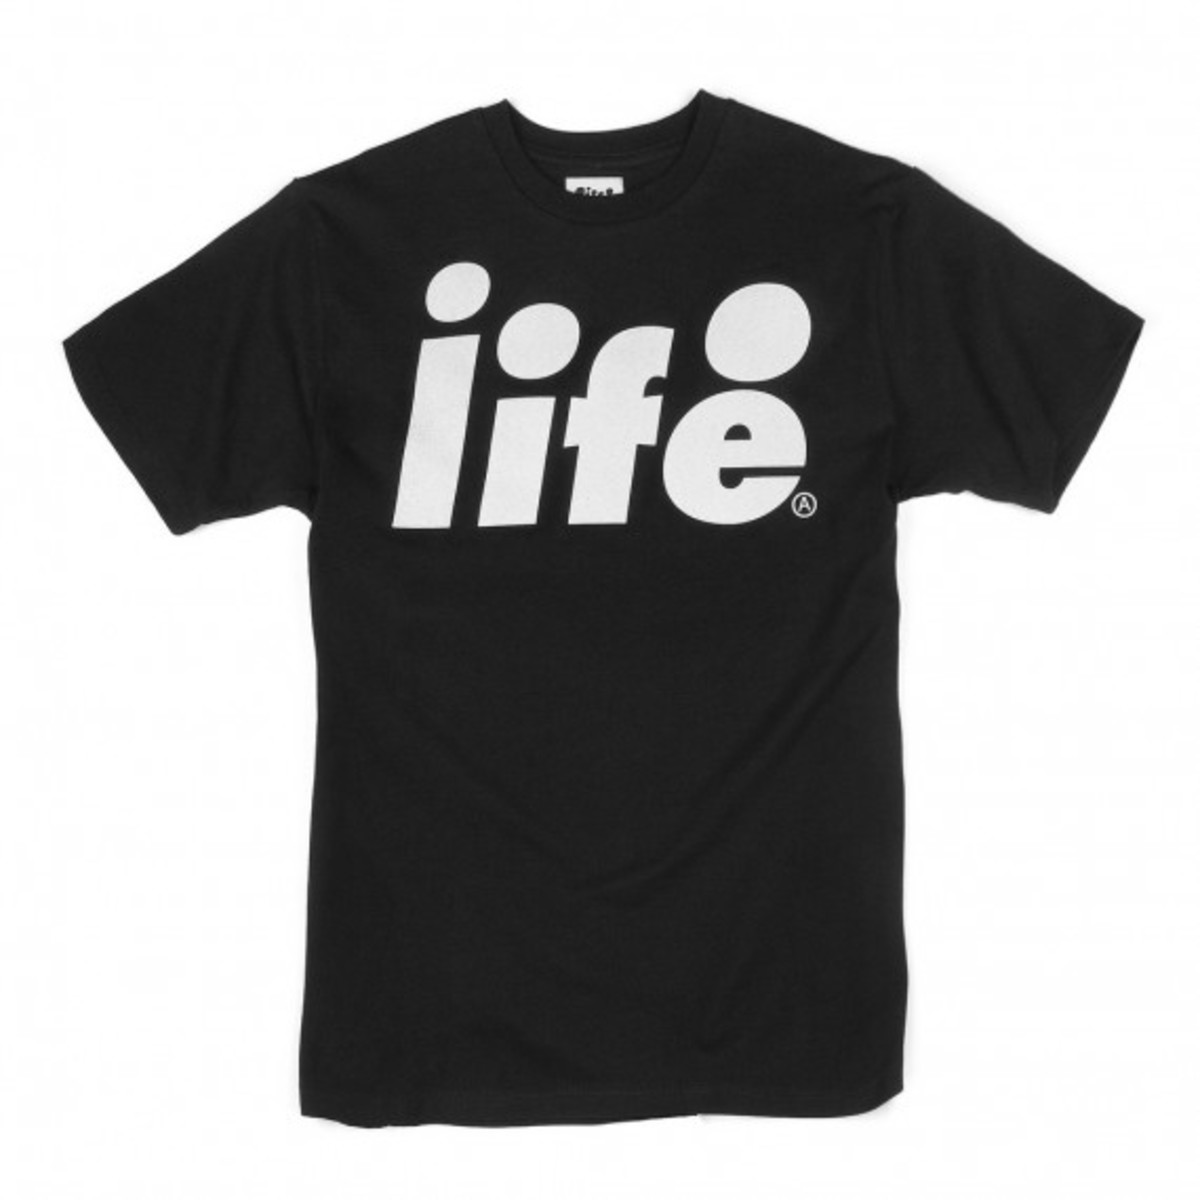 alife-tshirts-accessories-fall-2011-32